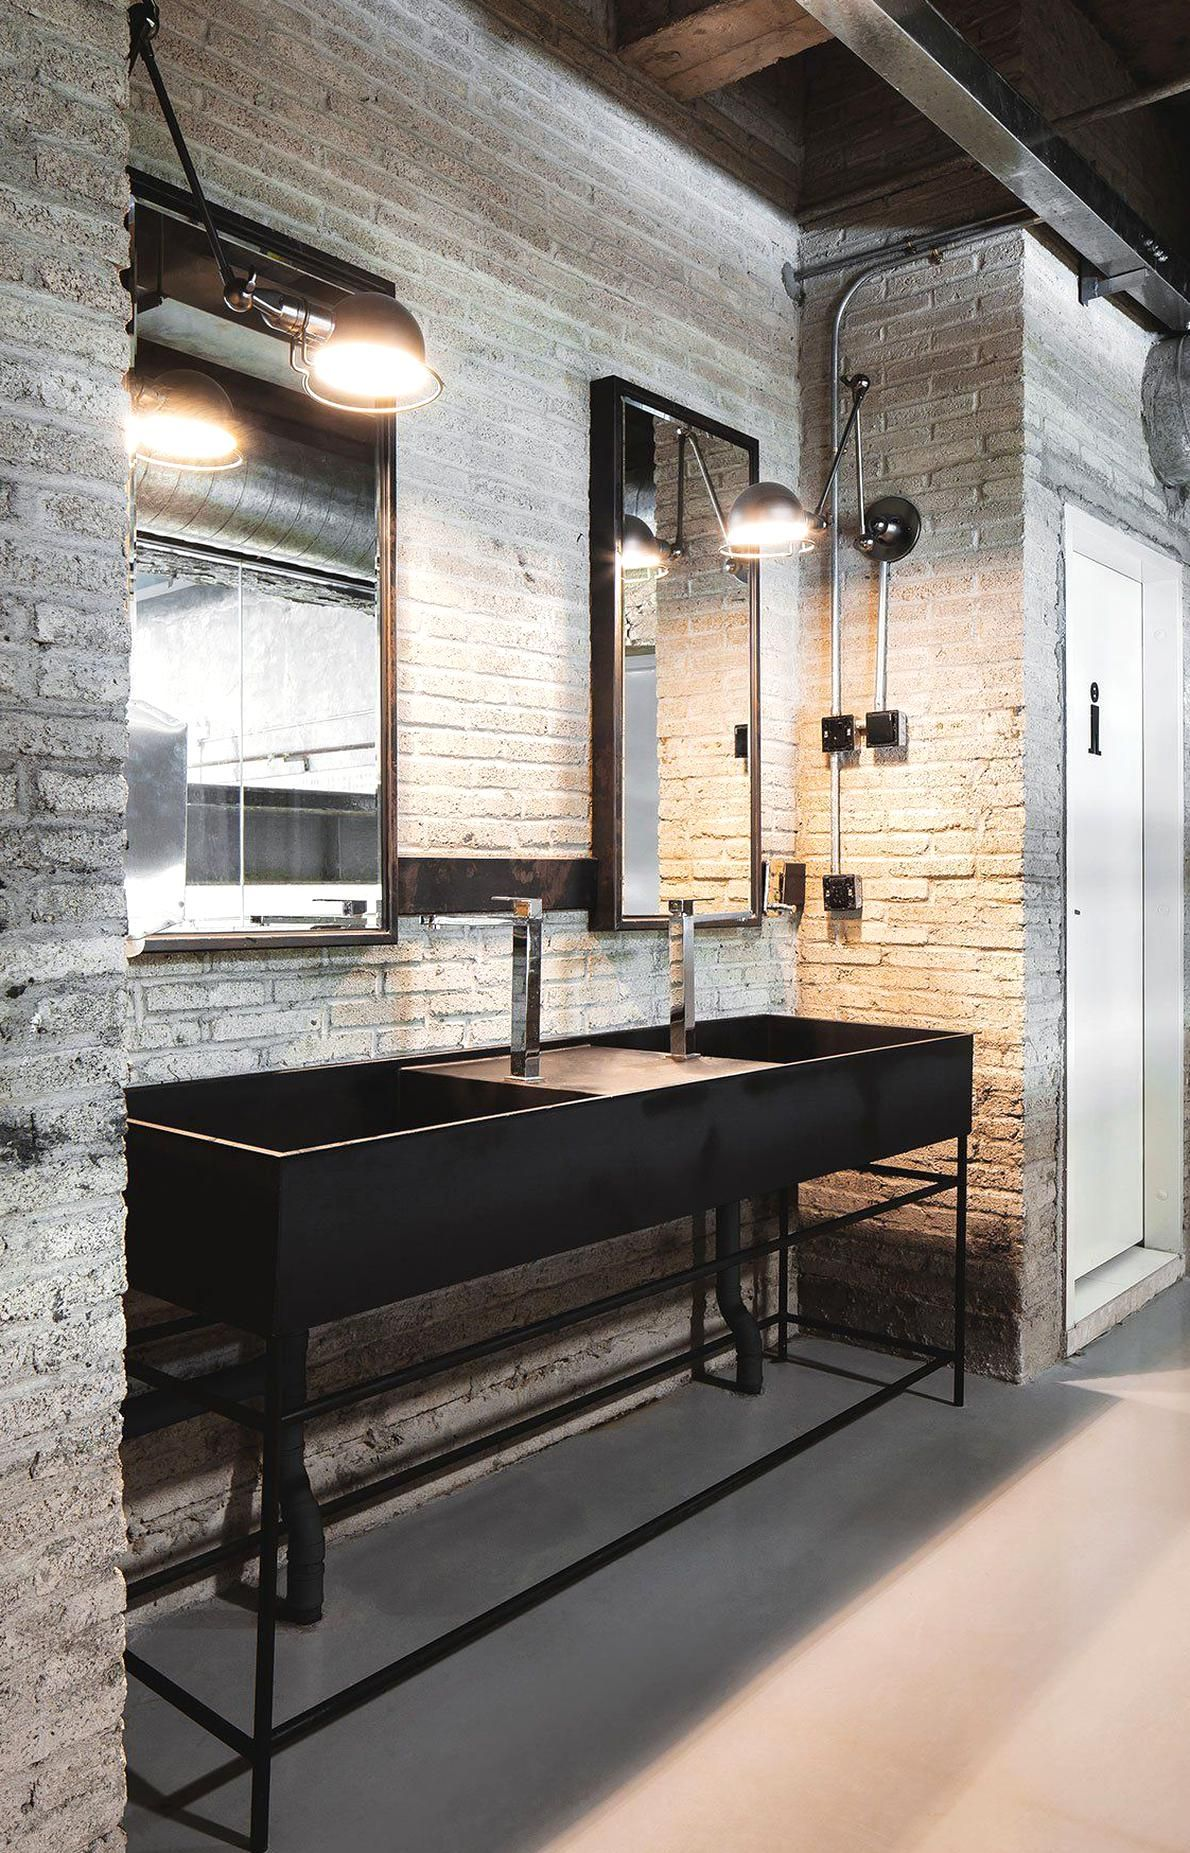 Get The Best Industrial Home Decor Ideas Visit Us For Industrial Style Interior De In 2020 Modern Industrial Decor Industrial Style Decor Industrial Style Interior